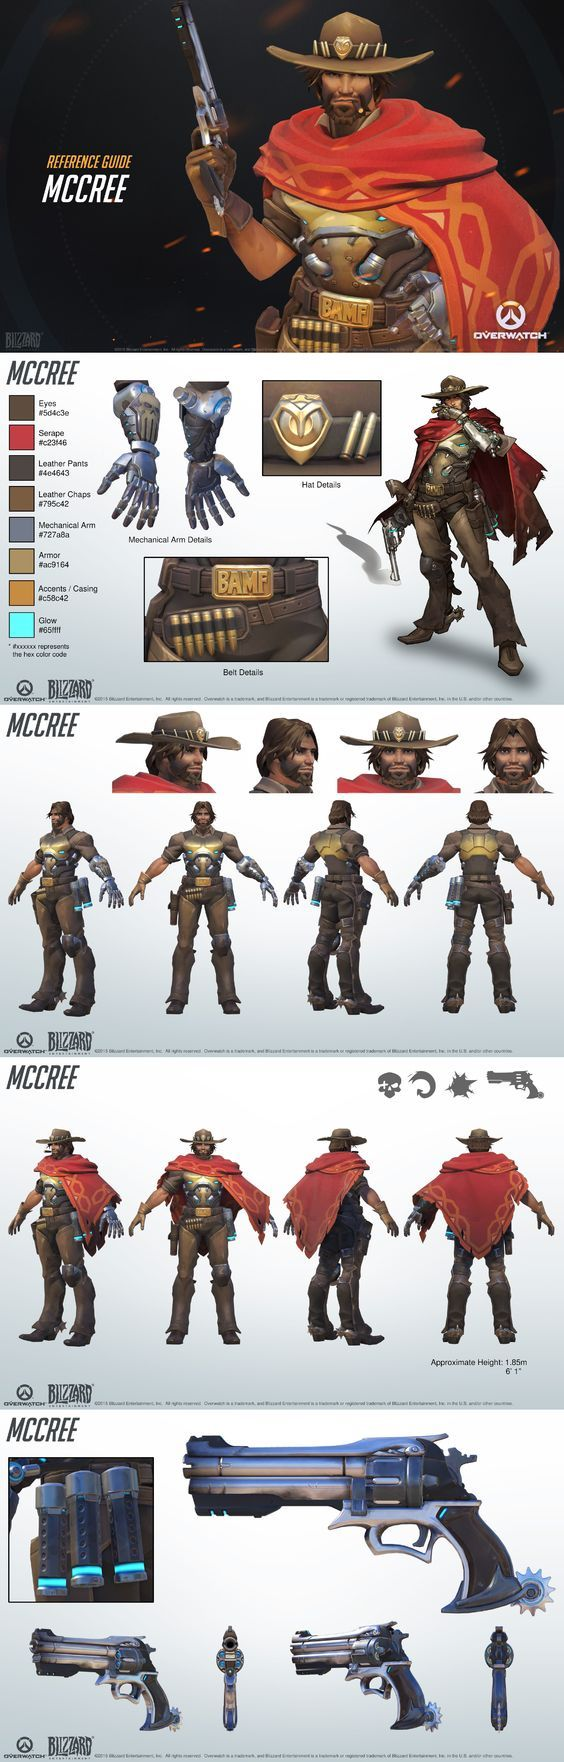 Overwatch - McCree Reference Guide: